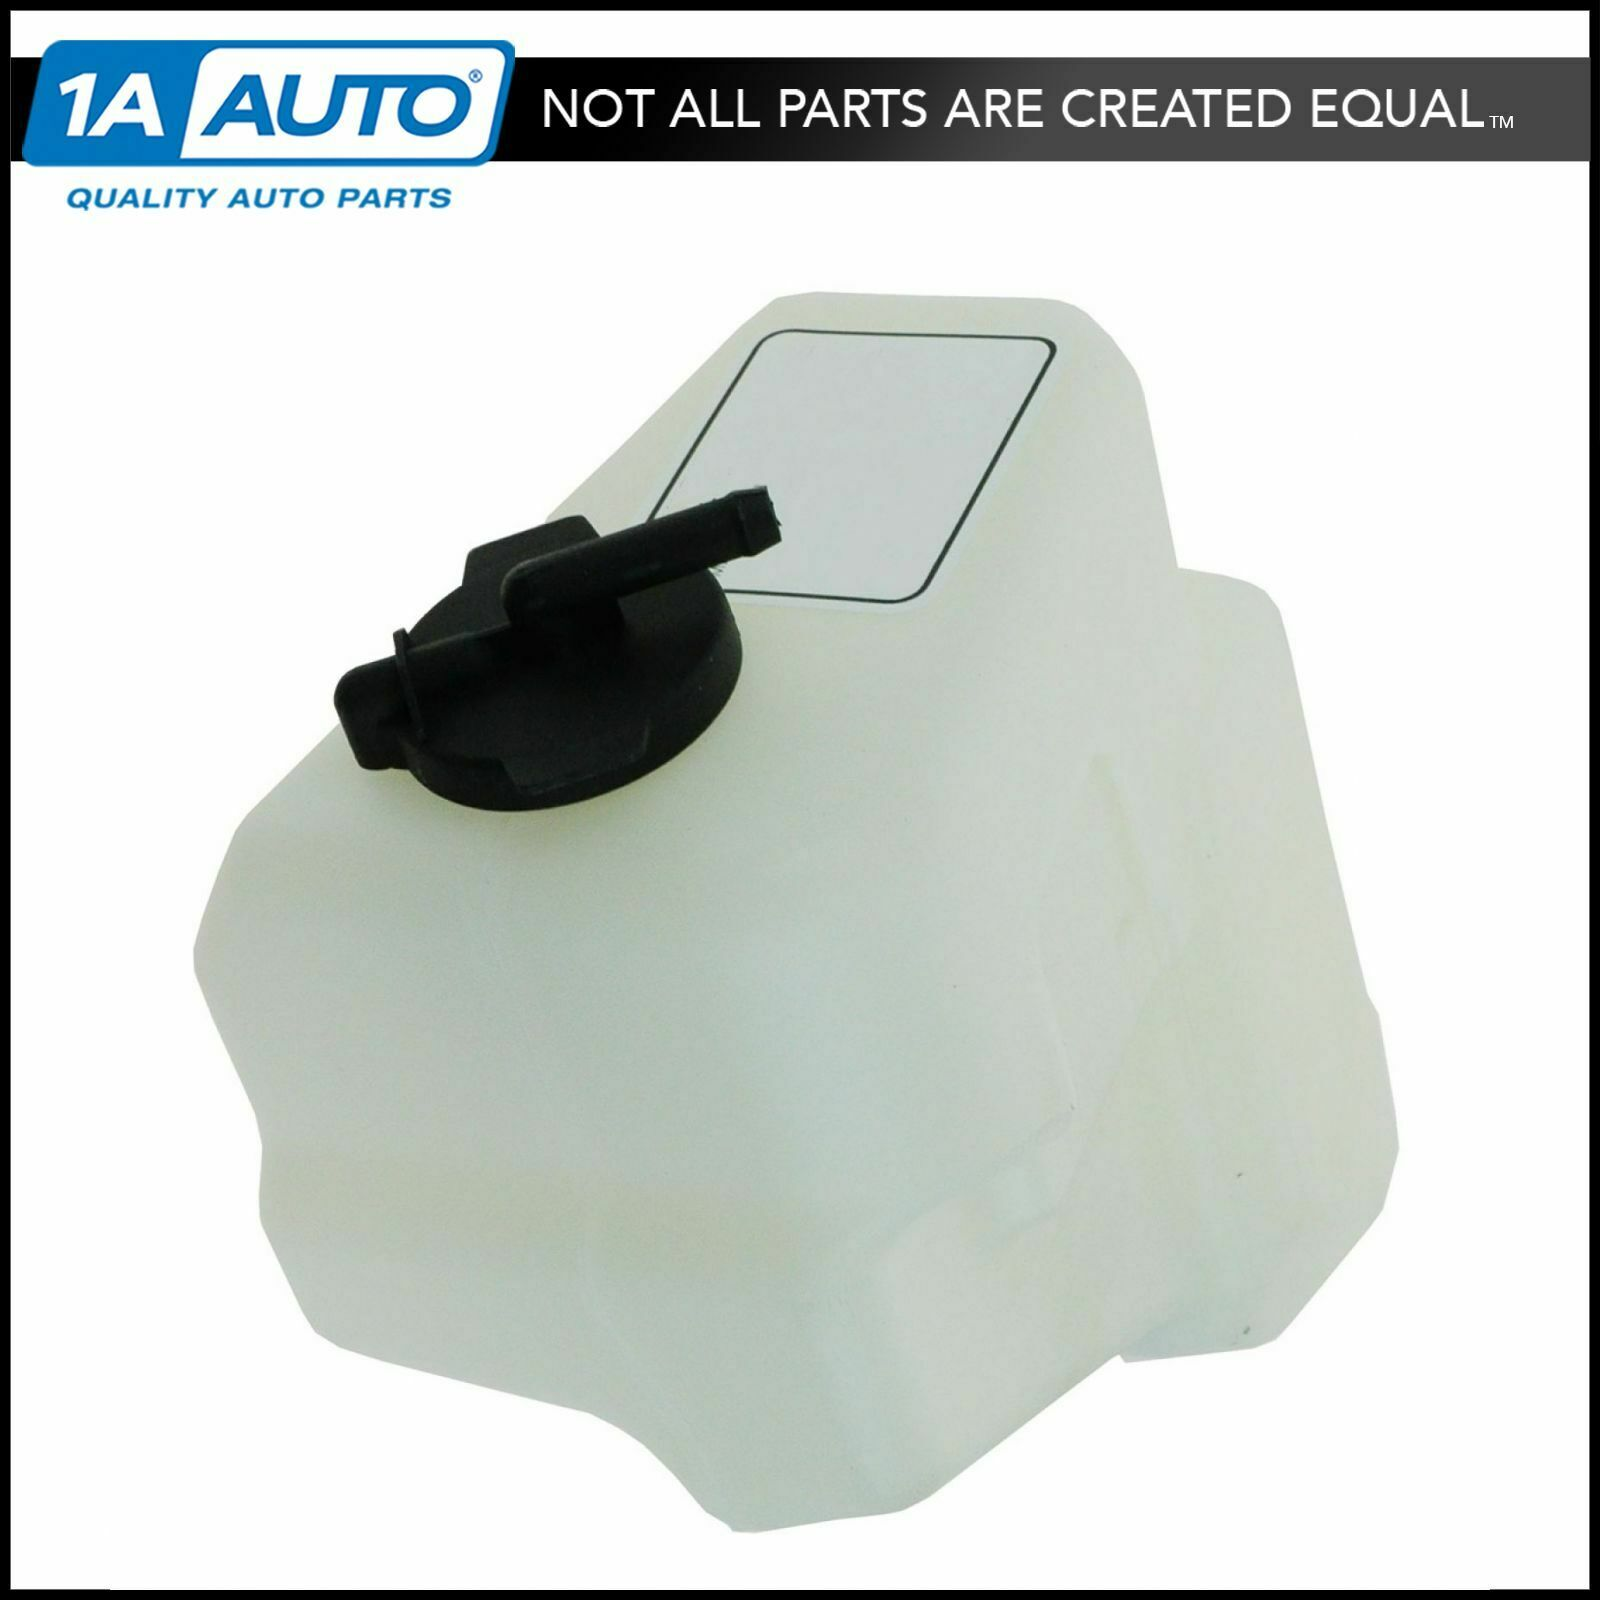 Radiator Coolant Overflow Expansion Tank Bottle For Toyota Camry Bleeder Screw Nissan Tiida 1 Of 2only 3 Available